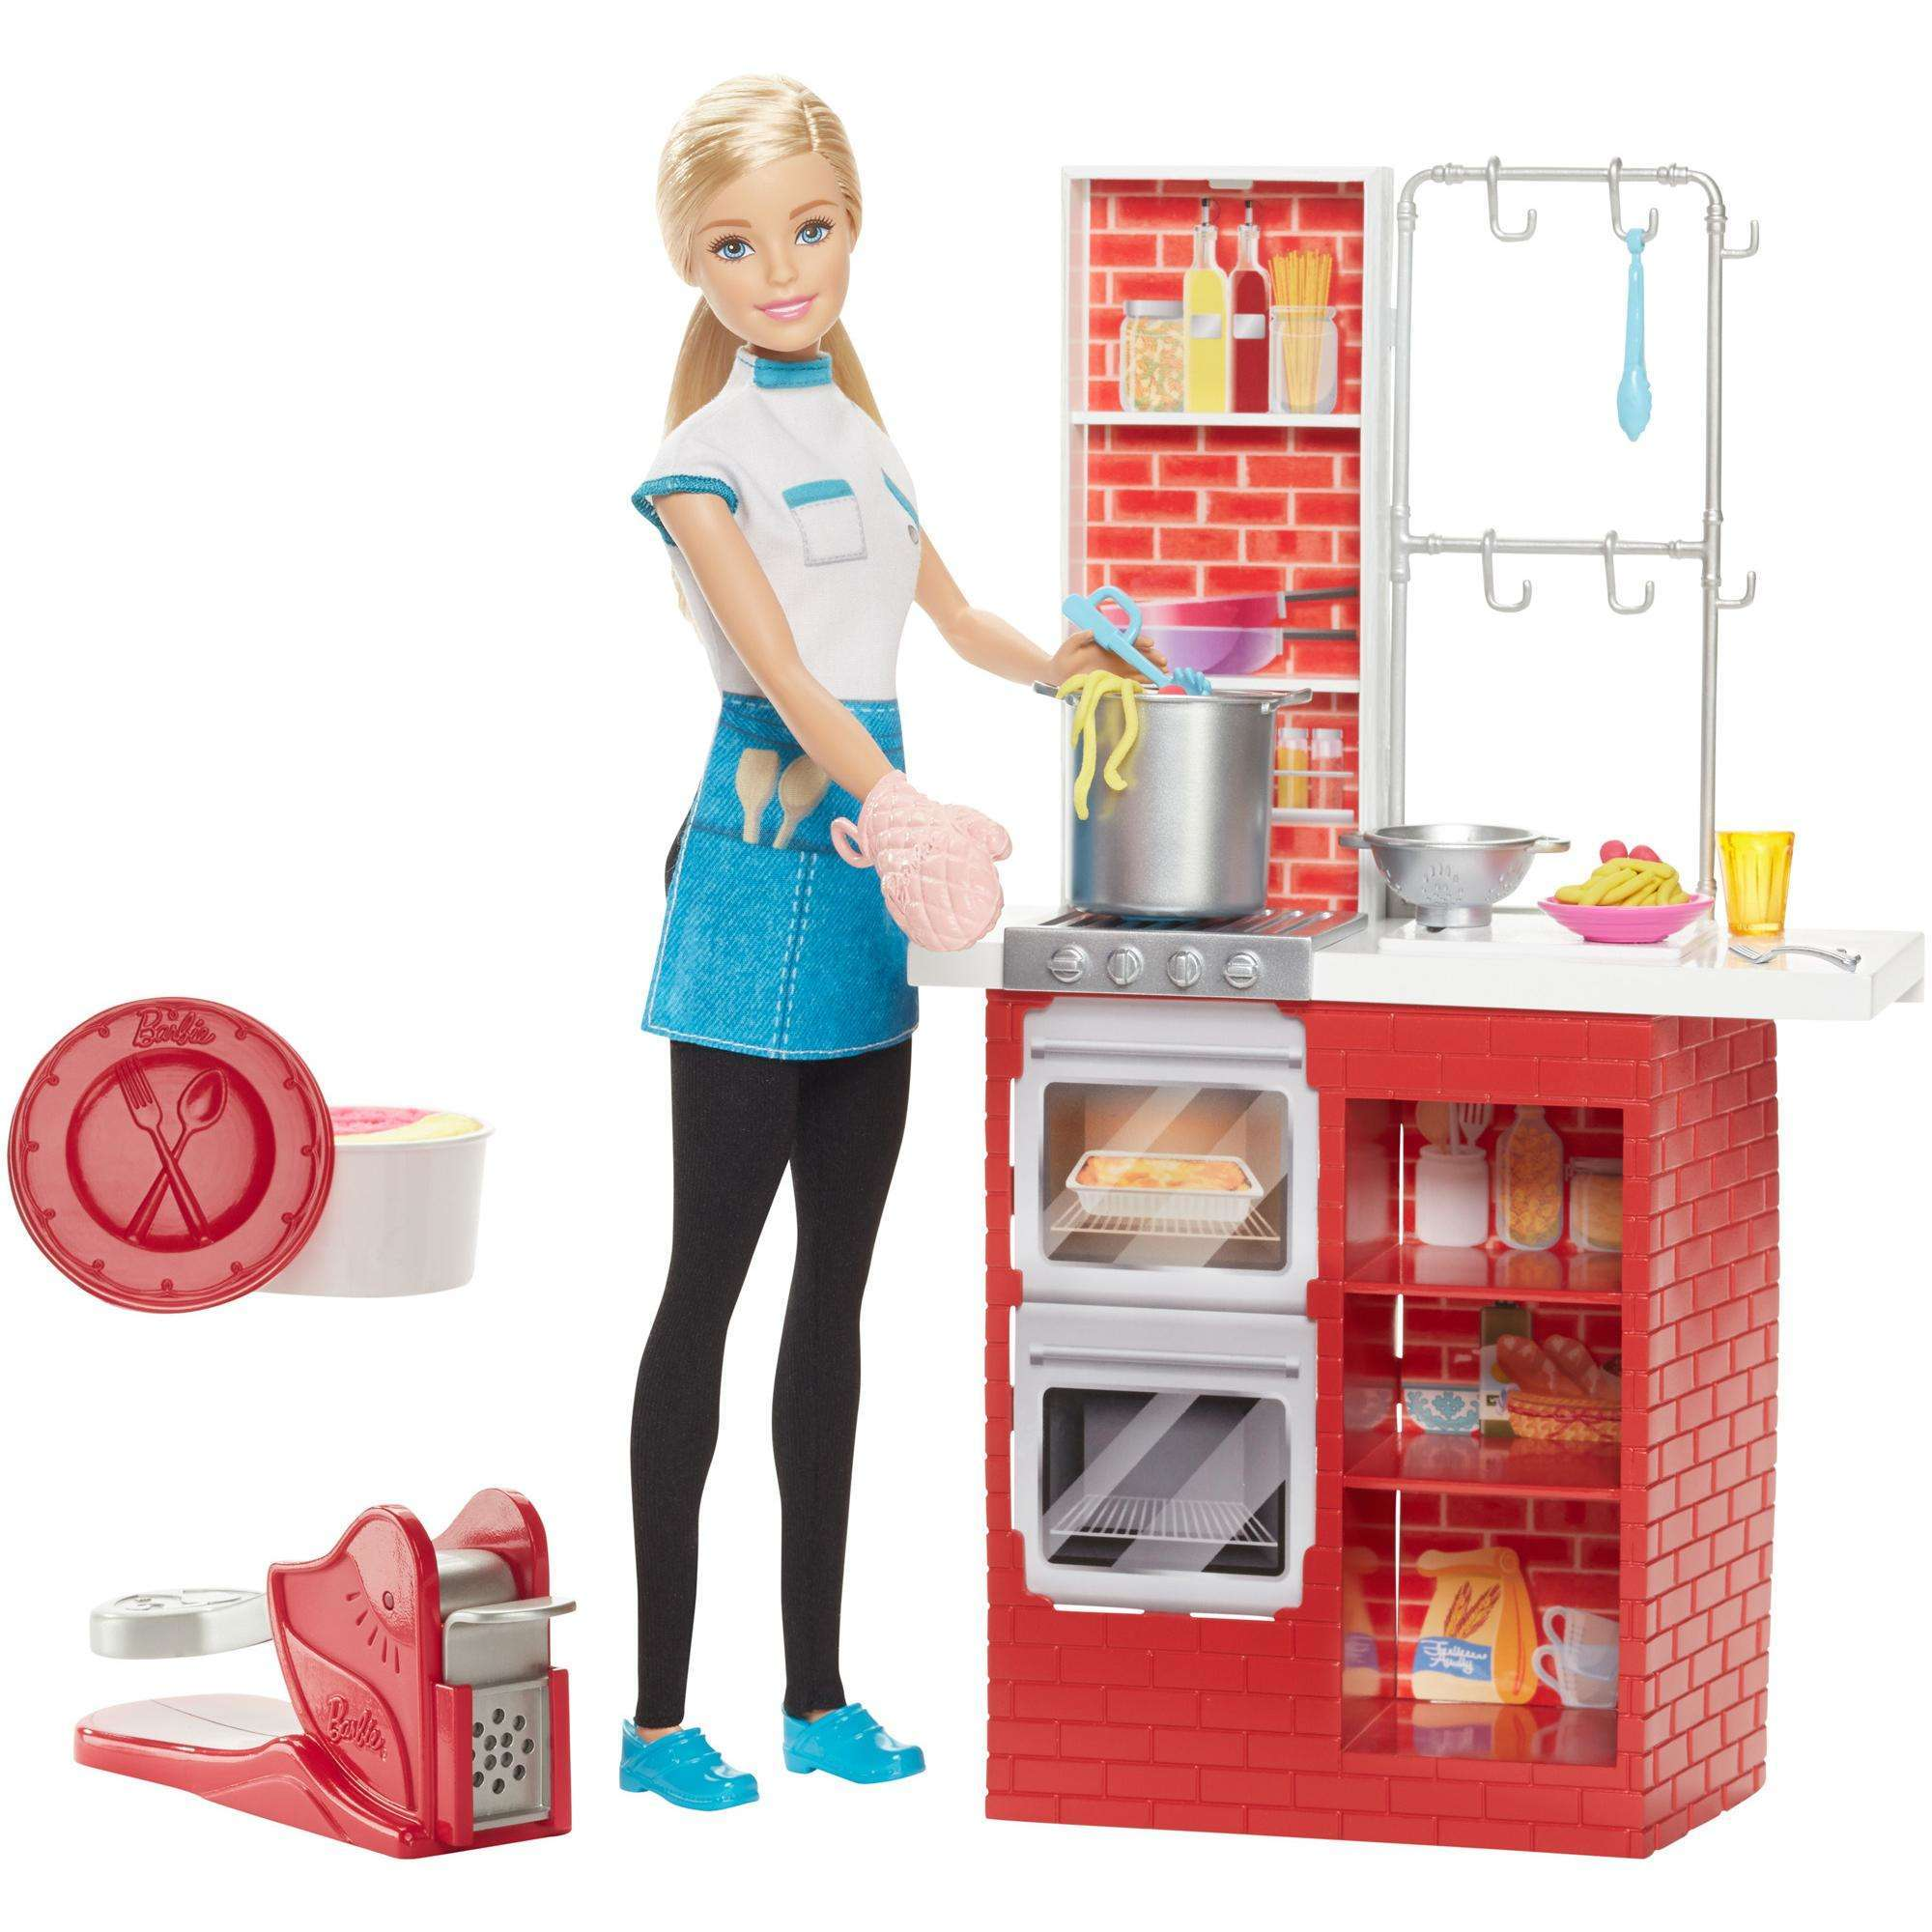 Barbie Spaghetti Chef Doll & Playset by MATTEL INC.